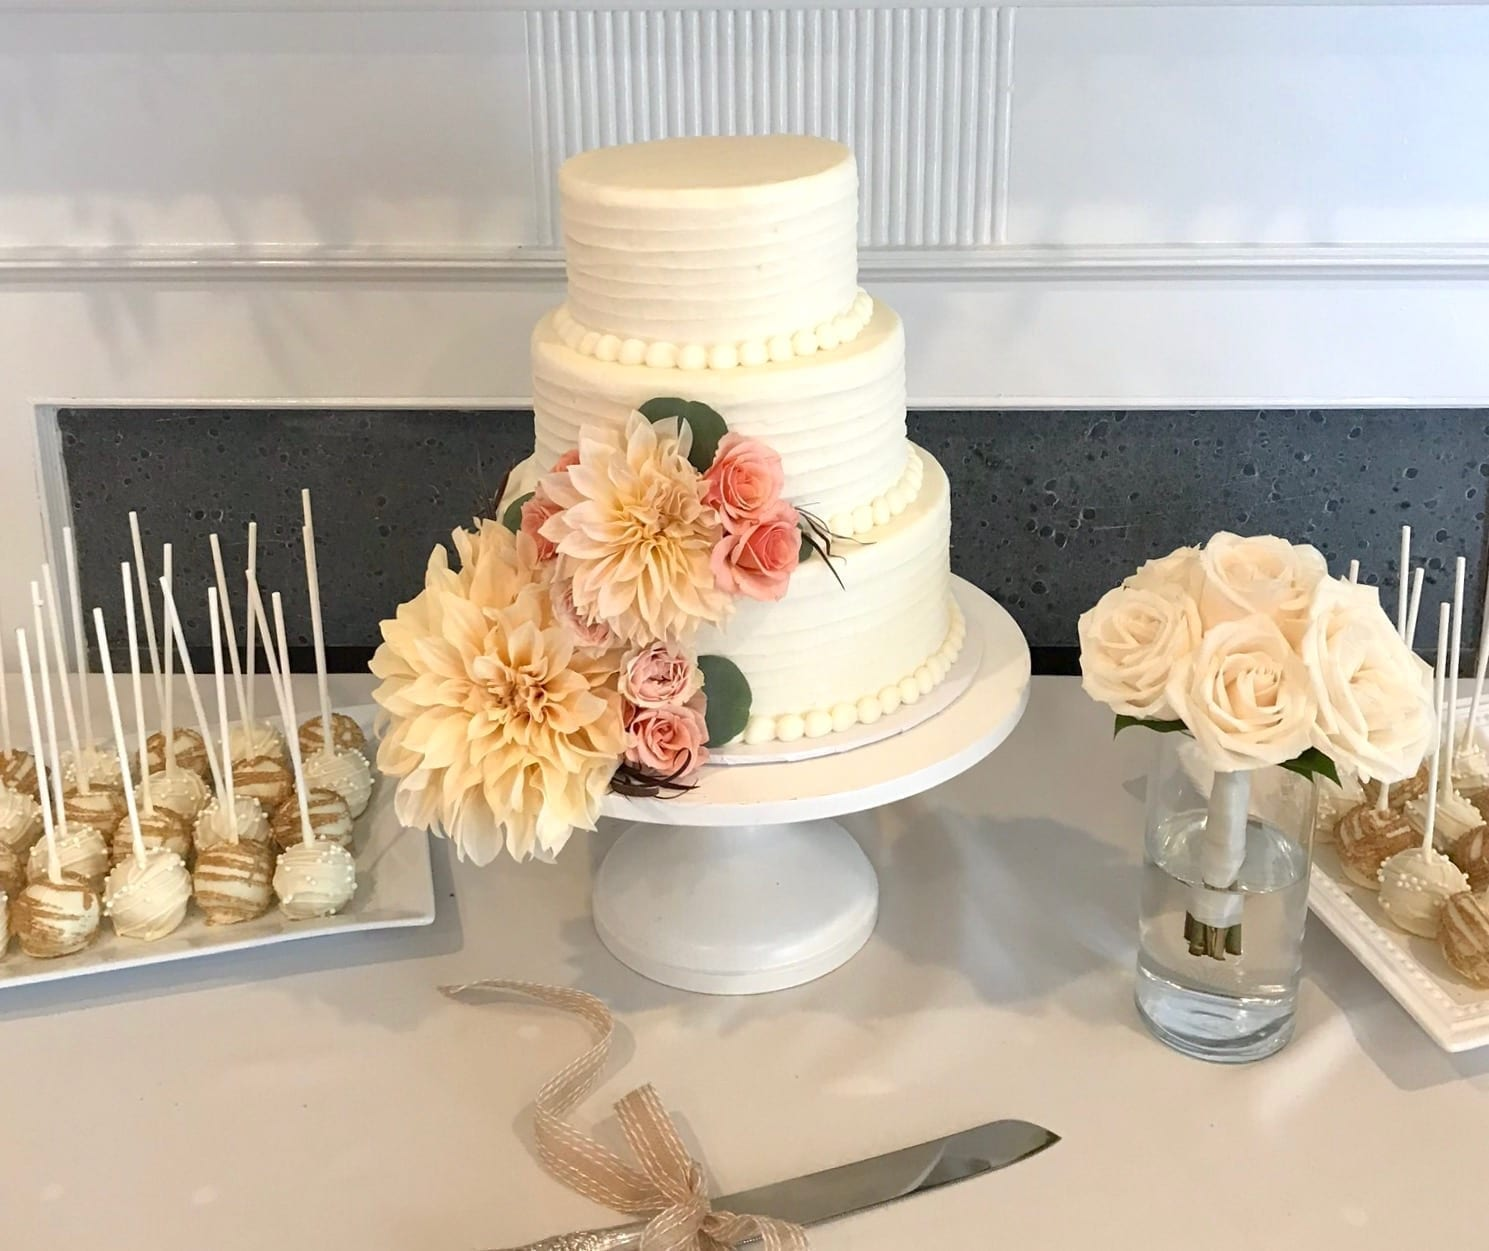 Rustic Wedding Cake with Dalias and Assorted Cake Pops | 3 Sweet Girls Cakery